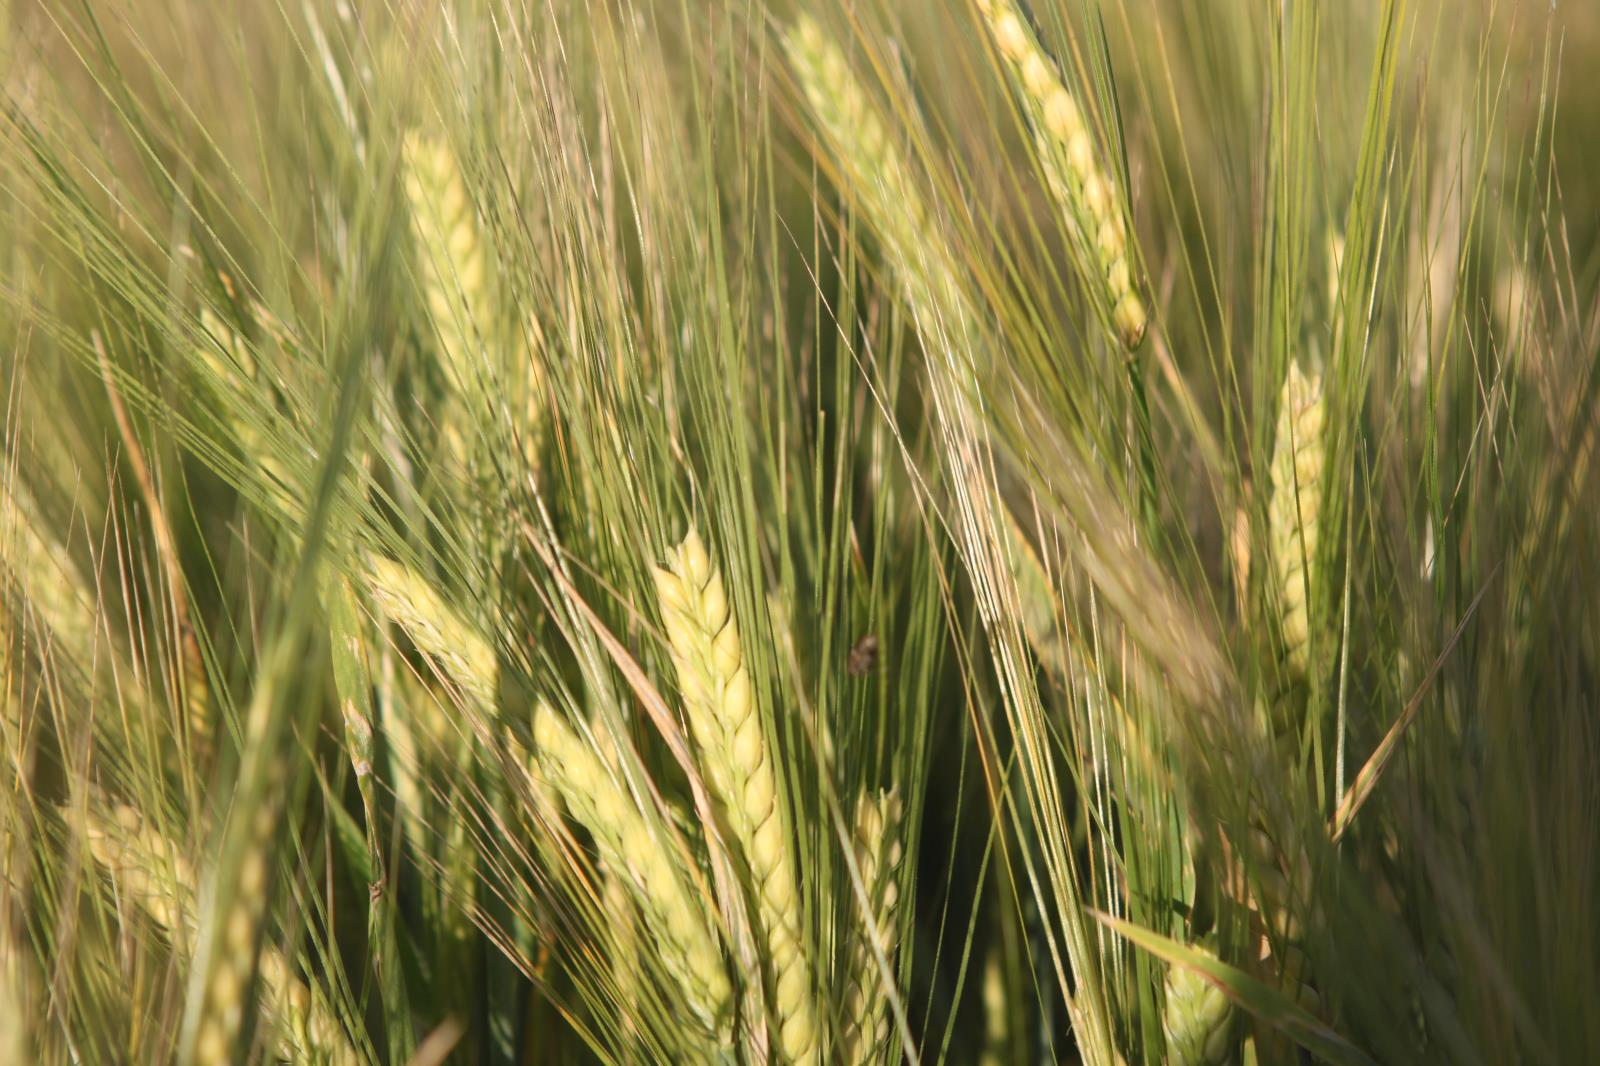 A barley field in East Idaho is shown in this file photo. Scoular Co. has announced it will build a $13 million barley manufacturing facility that will initially process 1.9 million bushels of barley annually.